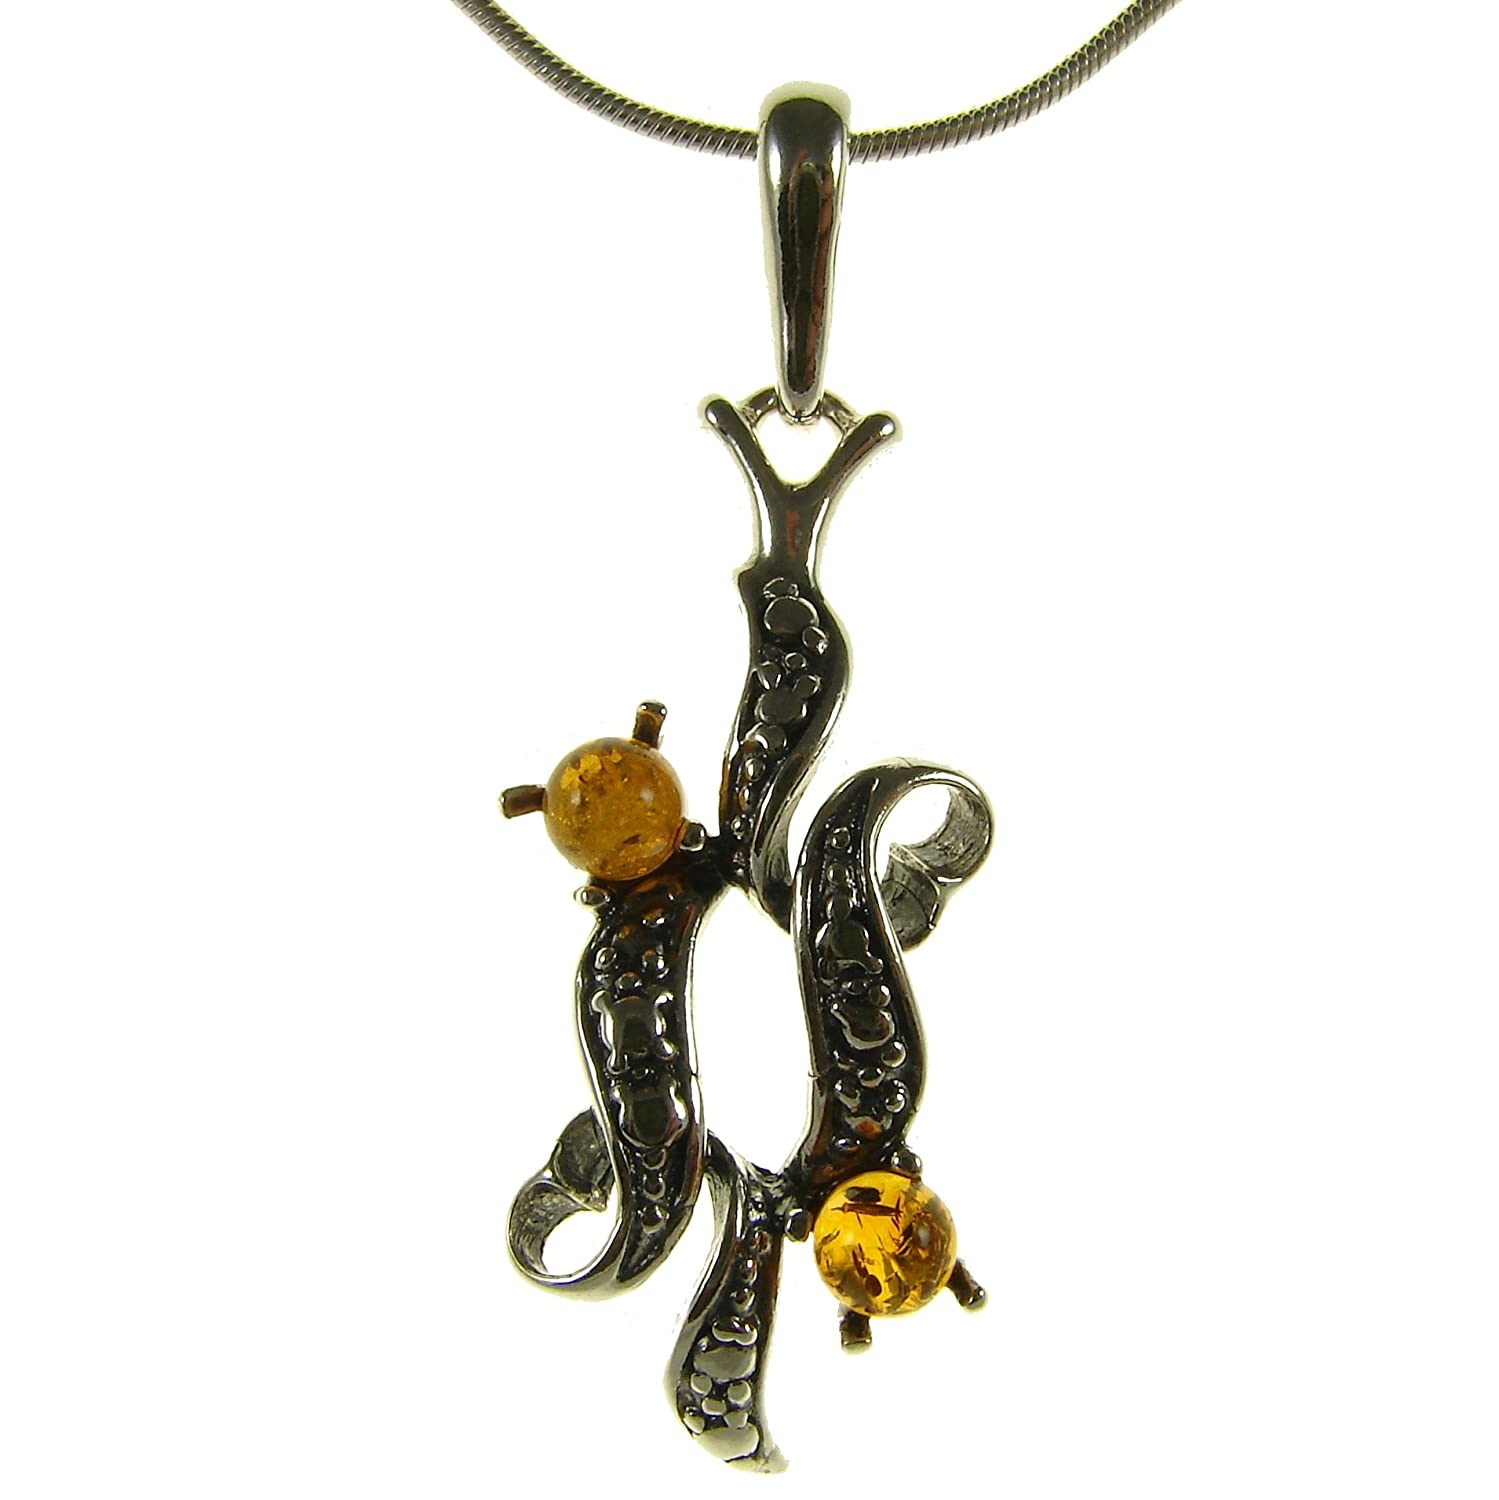 Baltic amber and sterling silver 925 designer cognac gift wrap present pendant necklace 10 12 14 16 18 20 22 24 26 28 30 32 34 36 38 40 1mm ITALIAN SNAKE CHAIN